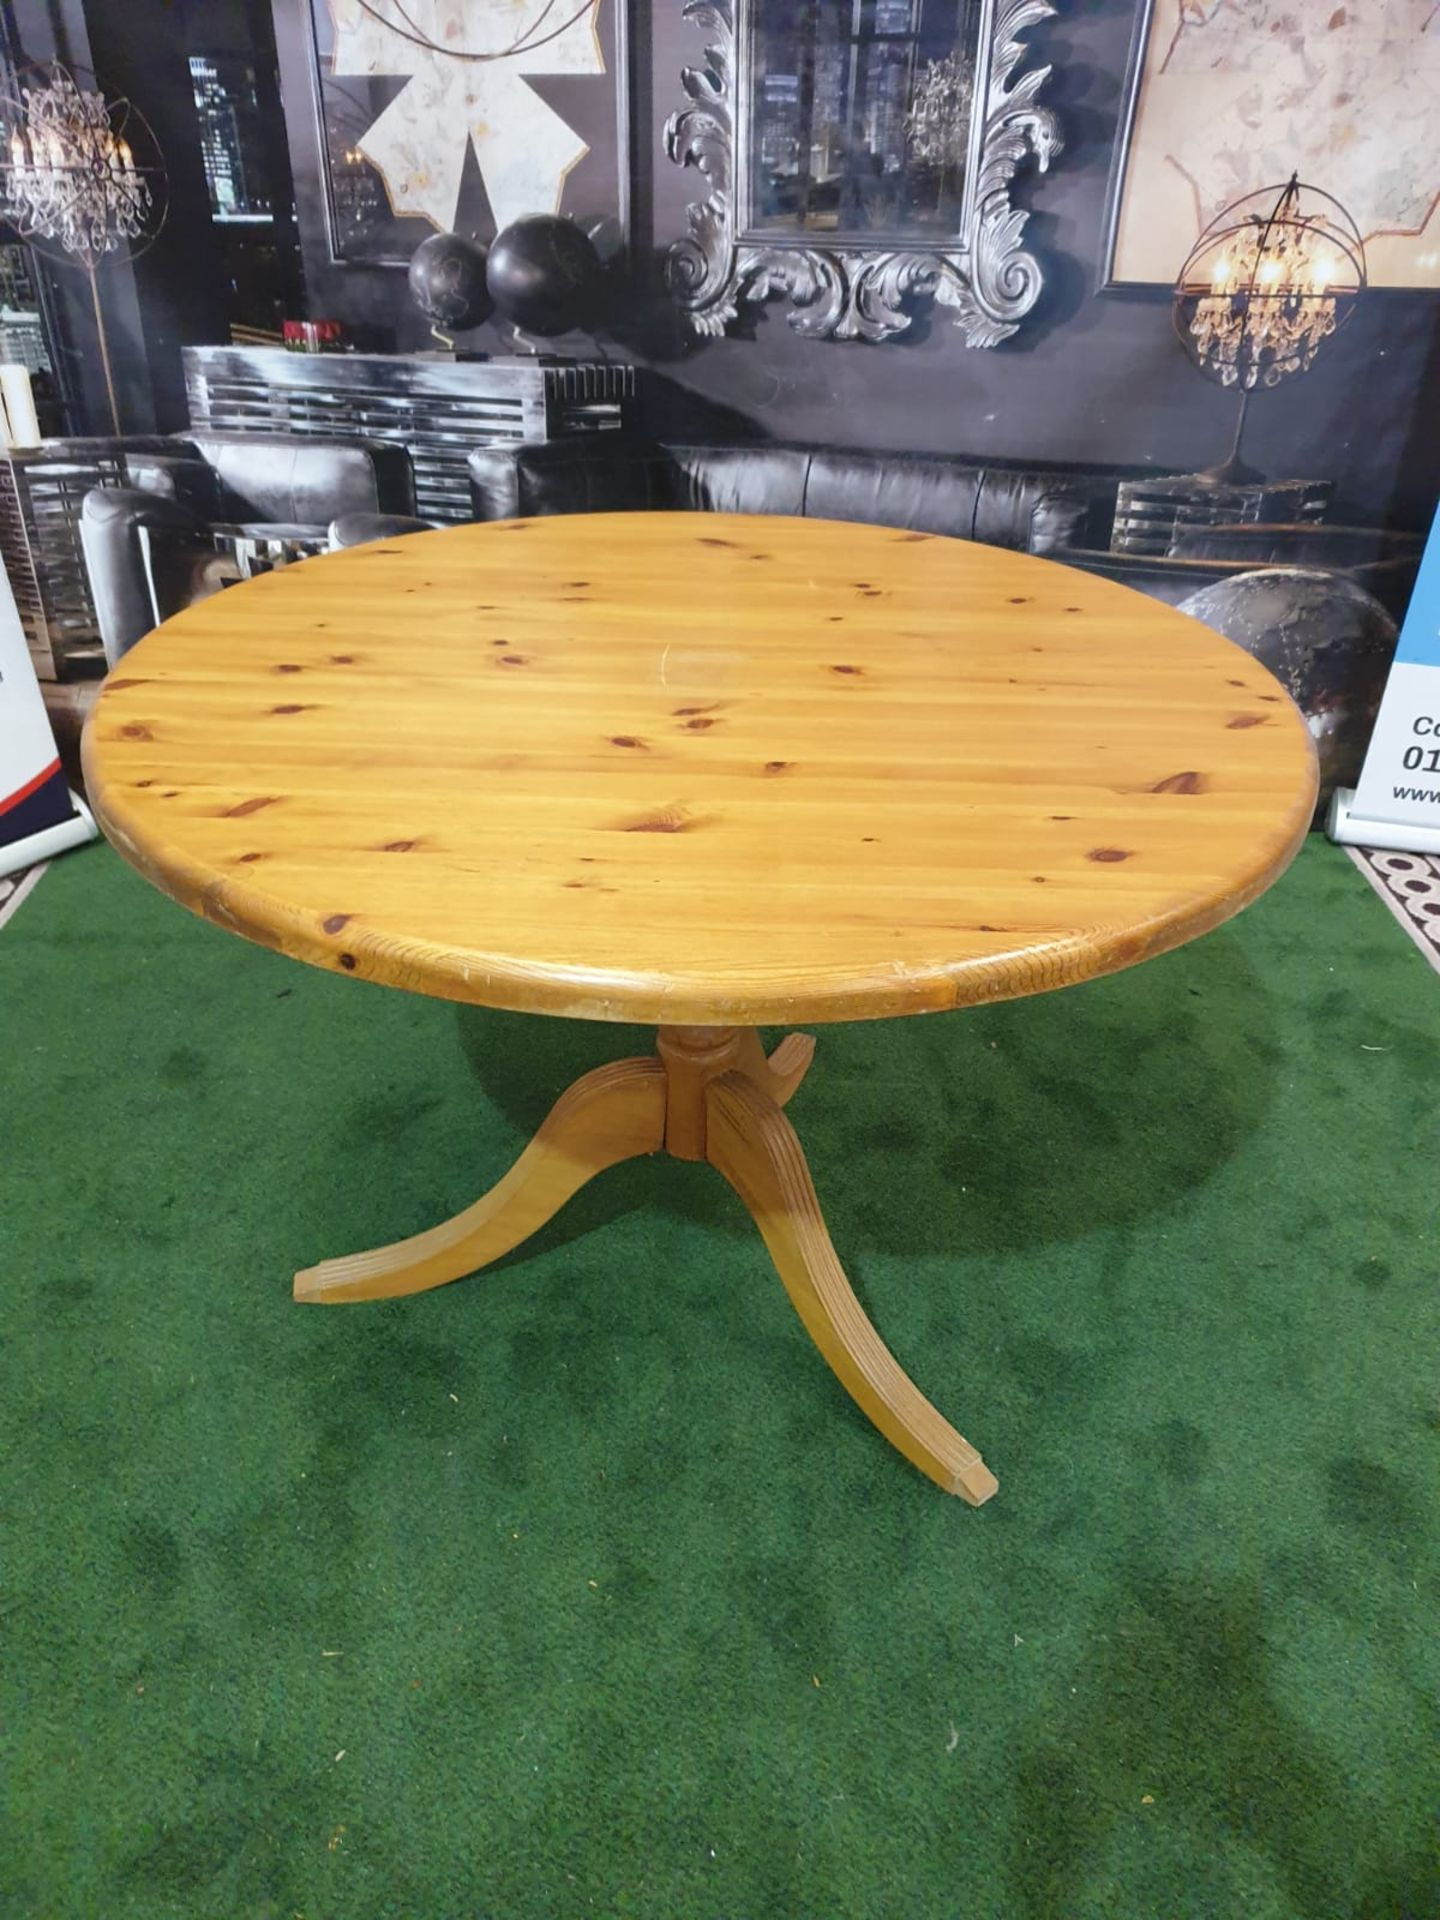 Round Dining Table in Repurposed Pine with Antique Pine Pedestal The table's pedestal, which is